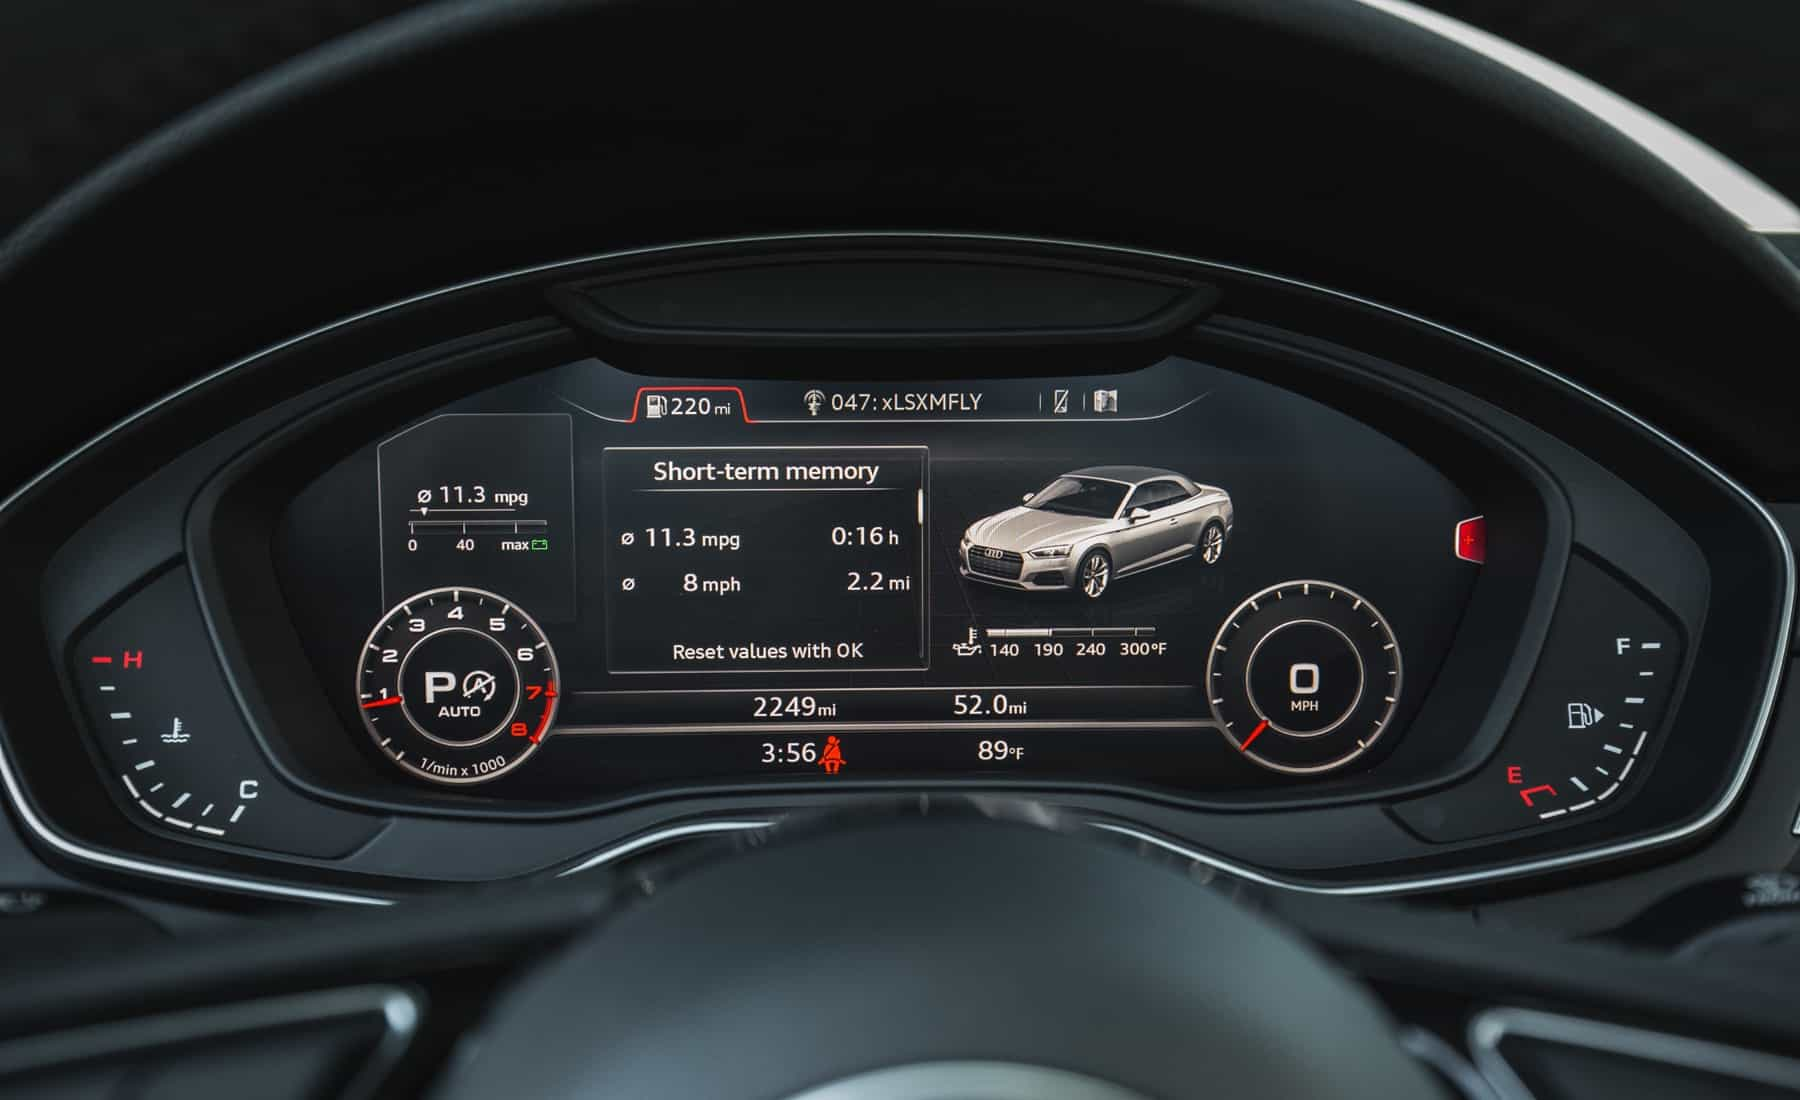 2018 Audi A5 Cabriolet Interior View Speedometer (Photo 16 of 45)